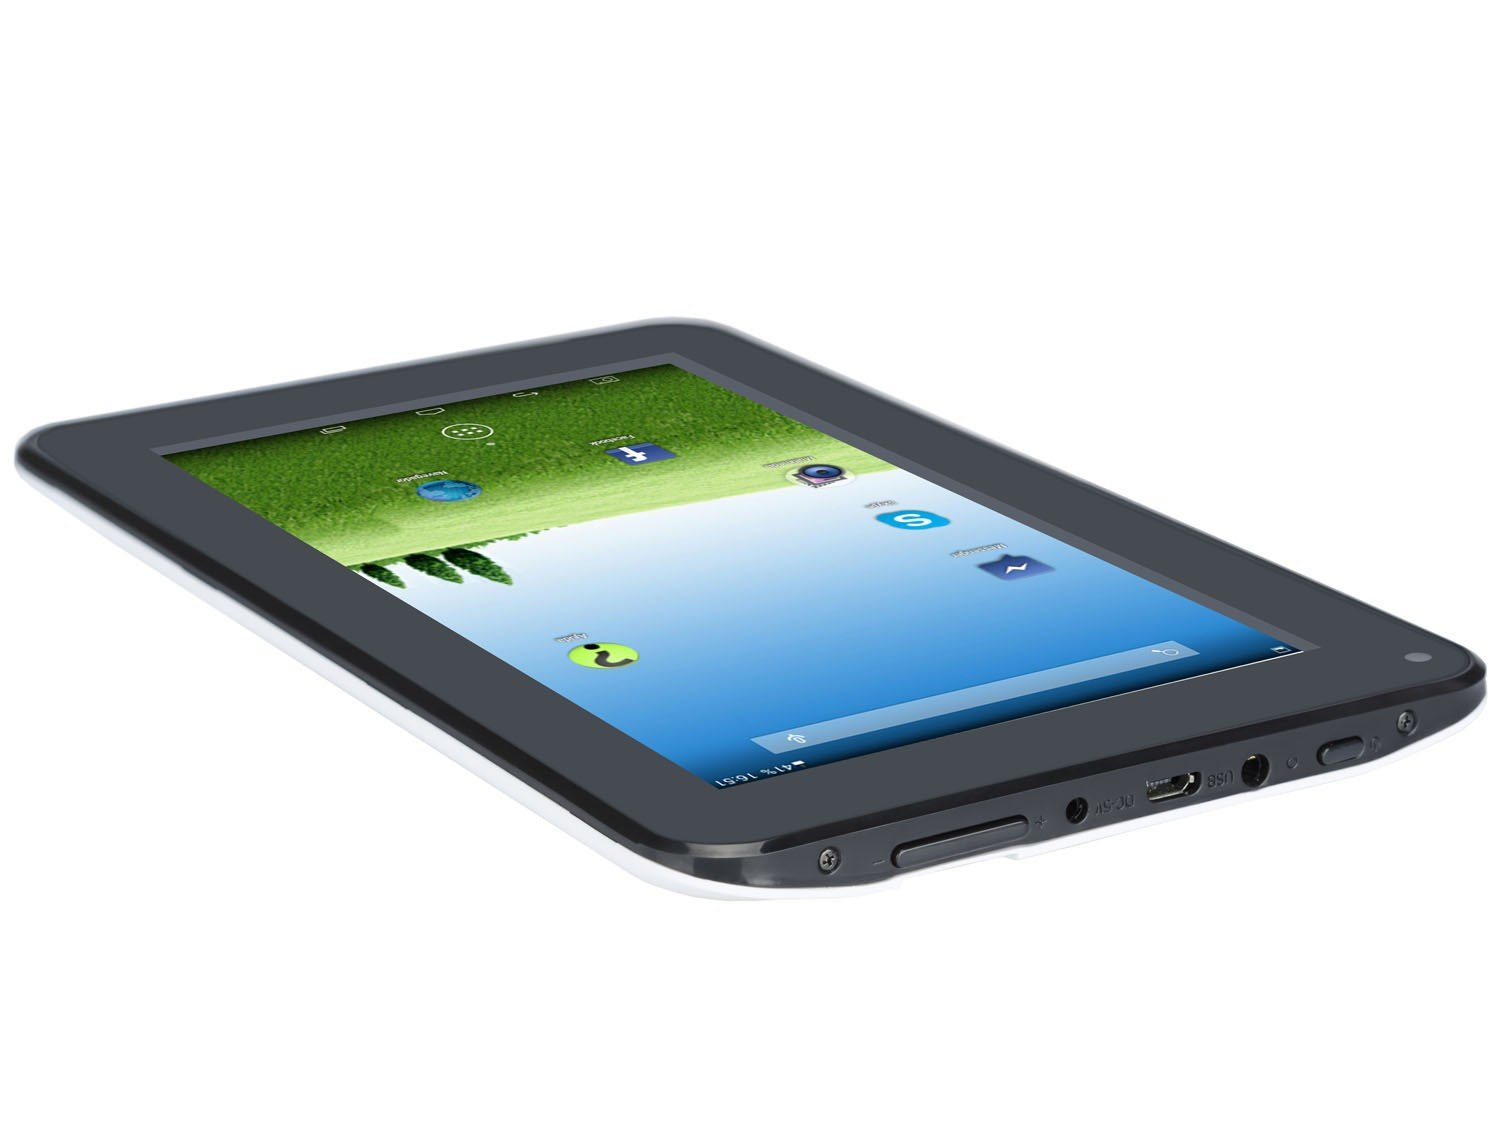 Foto 5 - Tablet DL e-Volution S 8GB 7 Wi-Fi Android 4.4 - Proc. Dual Core Câmera Integrada